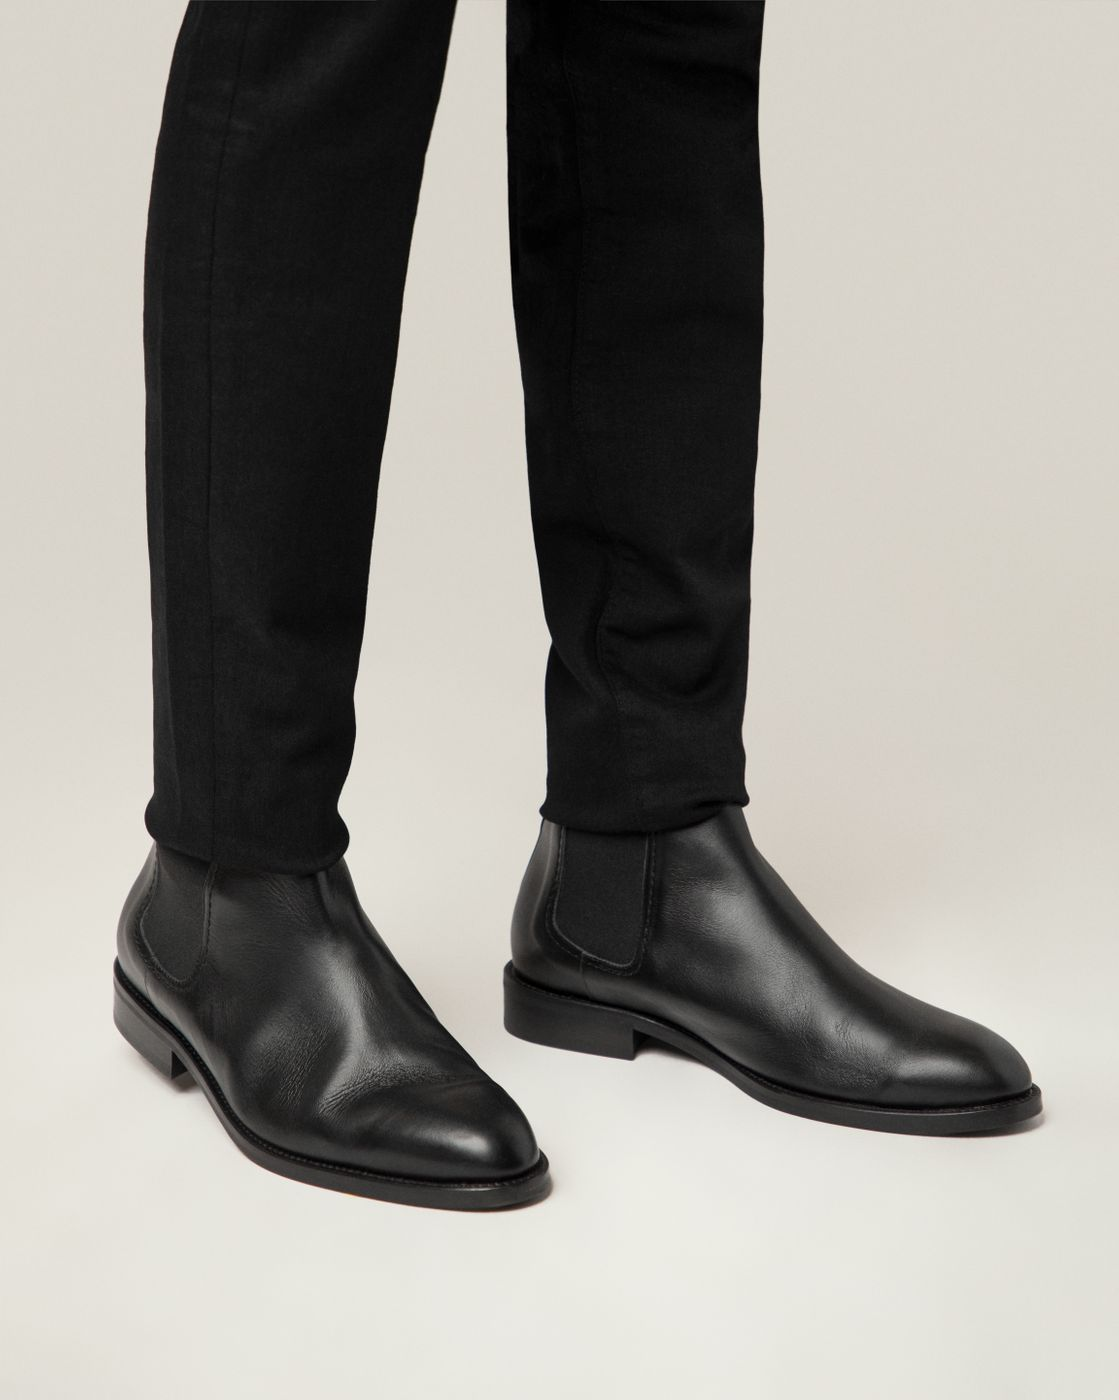 black jeans for men outfits